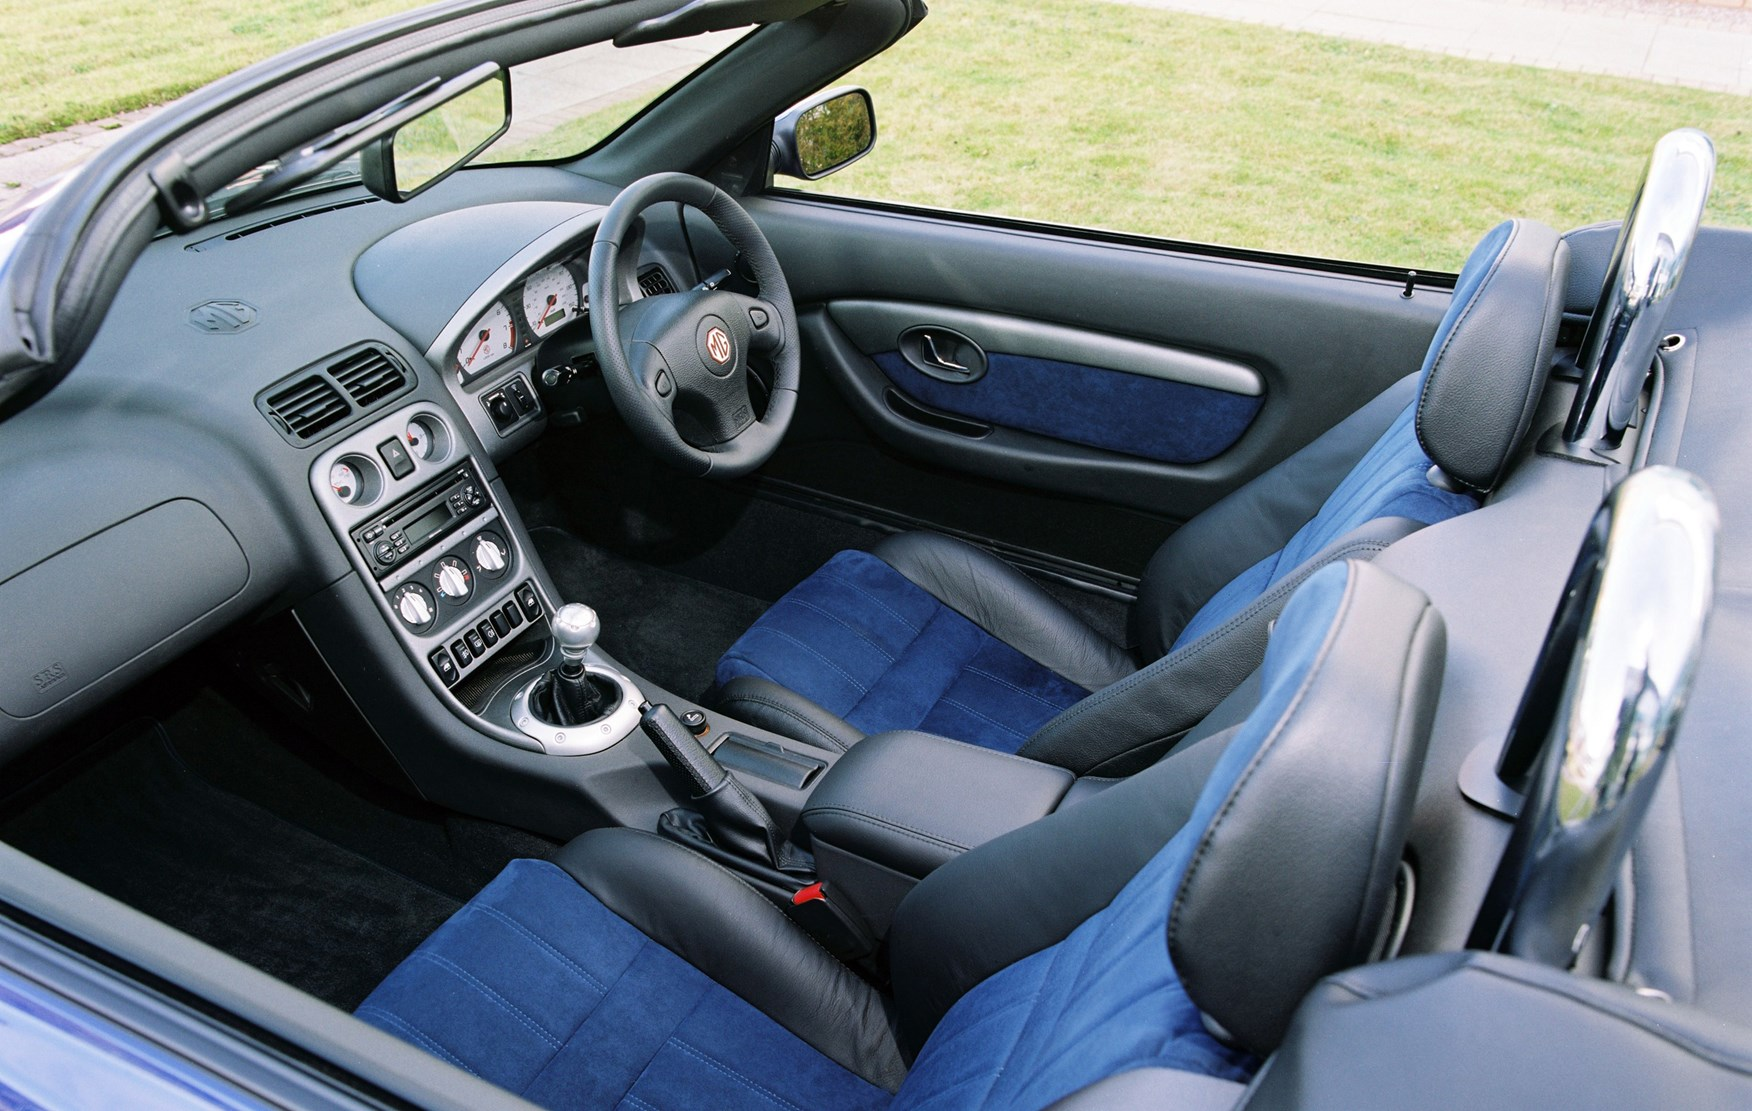 Mg tf convertible review 2002 2005 parkers view all images of the mg tf 02 05 vanachro Gallery